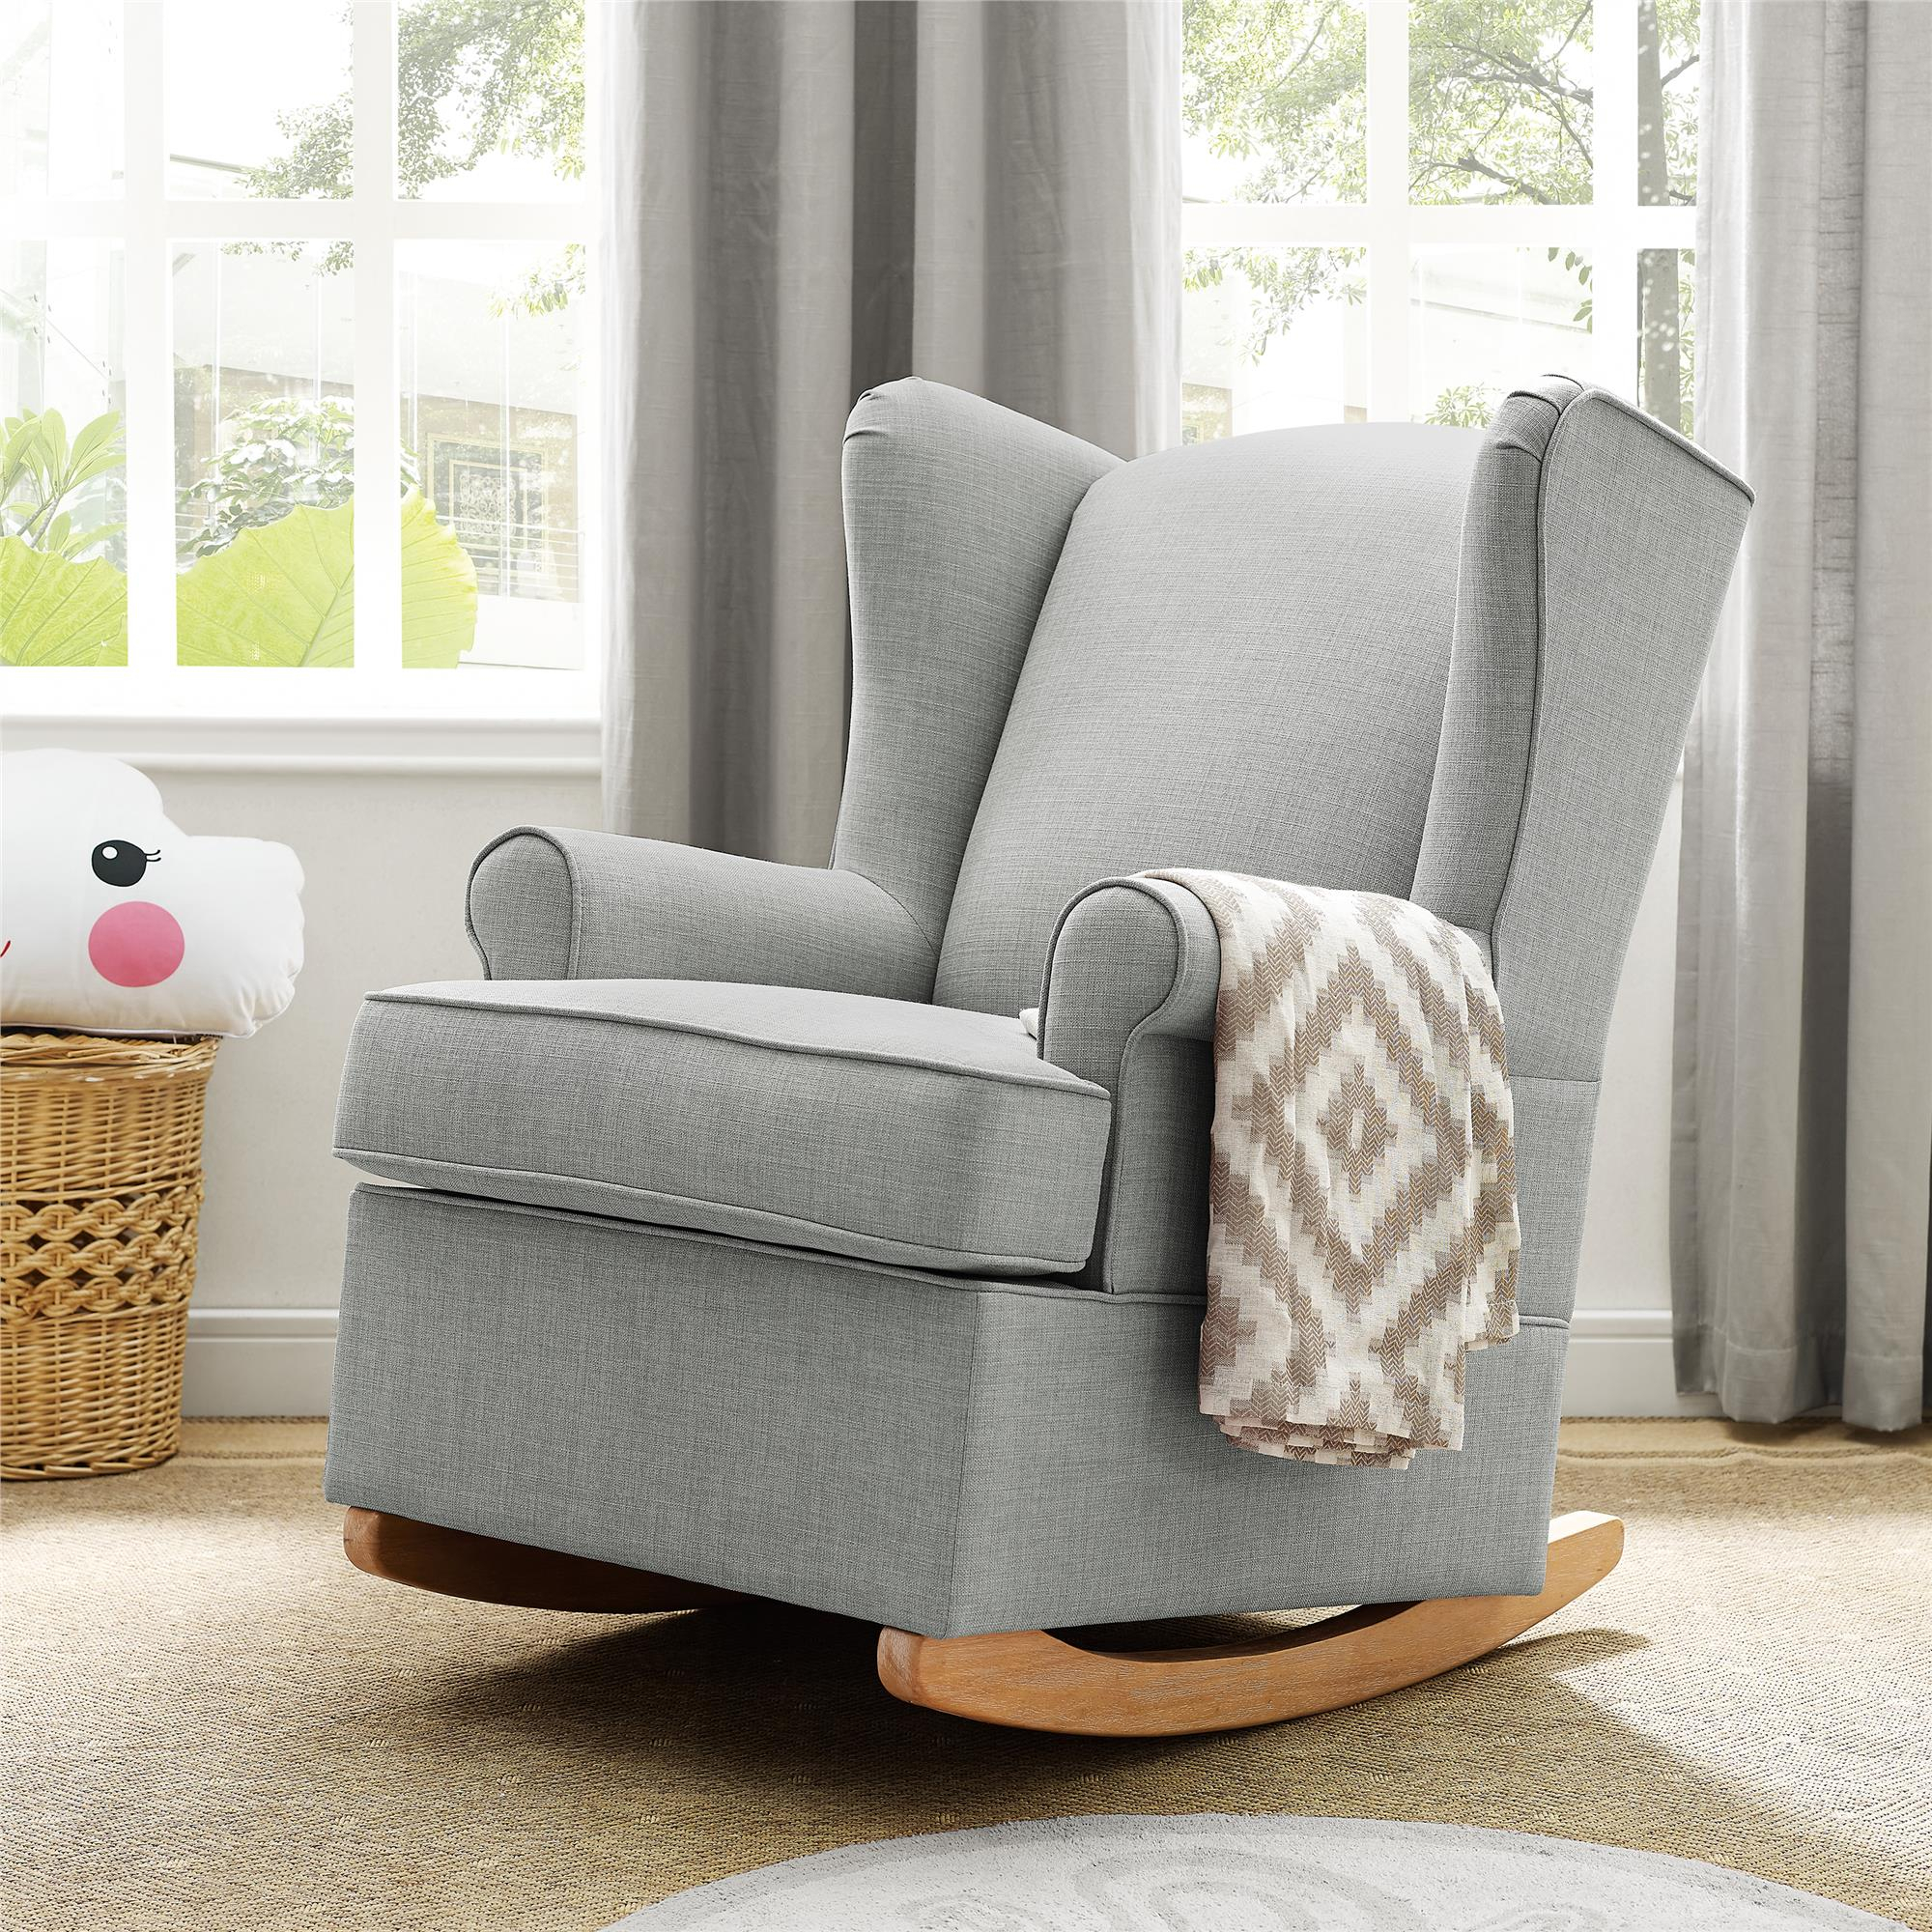 Dorel Living | Baby Relax Brennan Wingback Convertible Rocker, Gray in Brennan Sofa Chairs